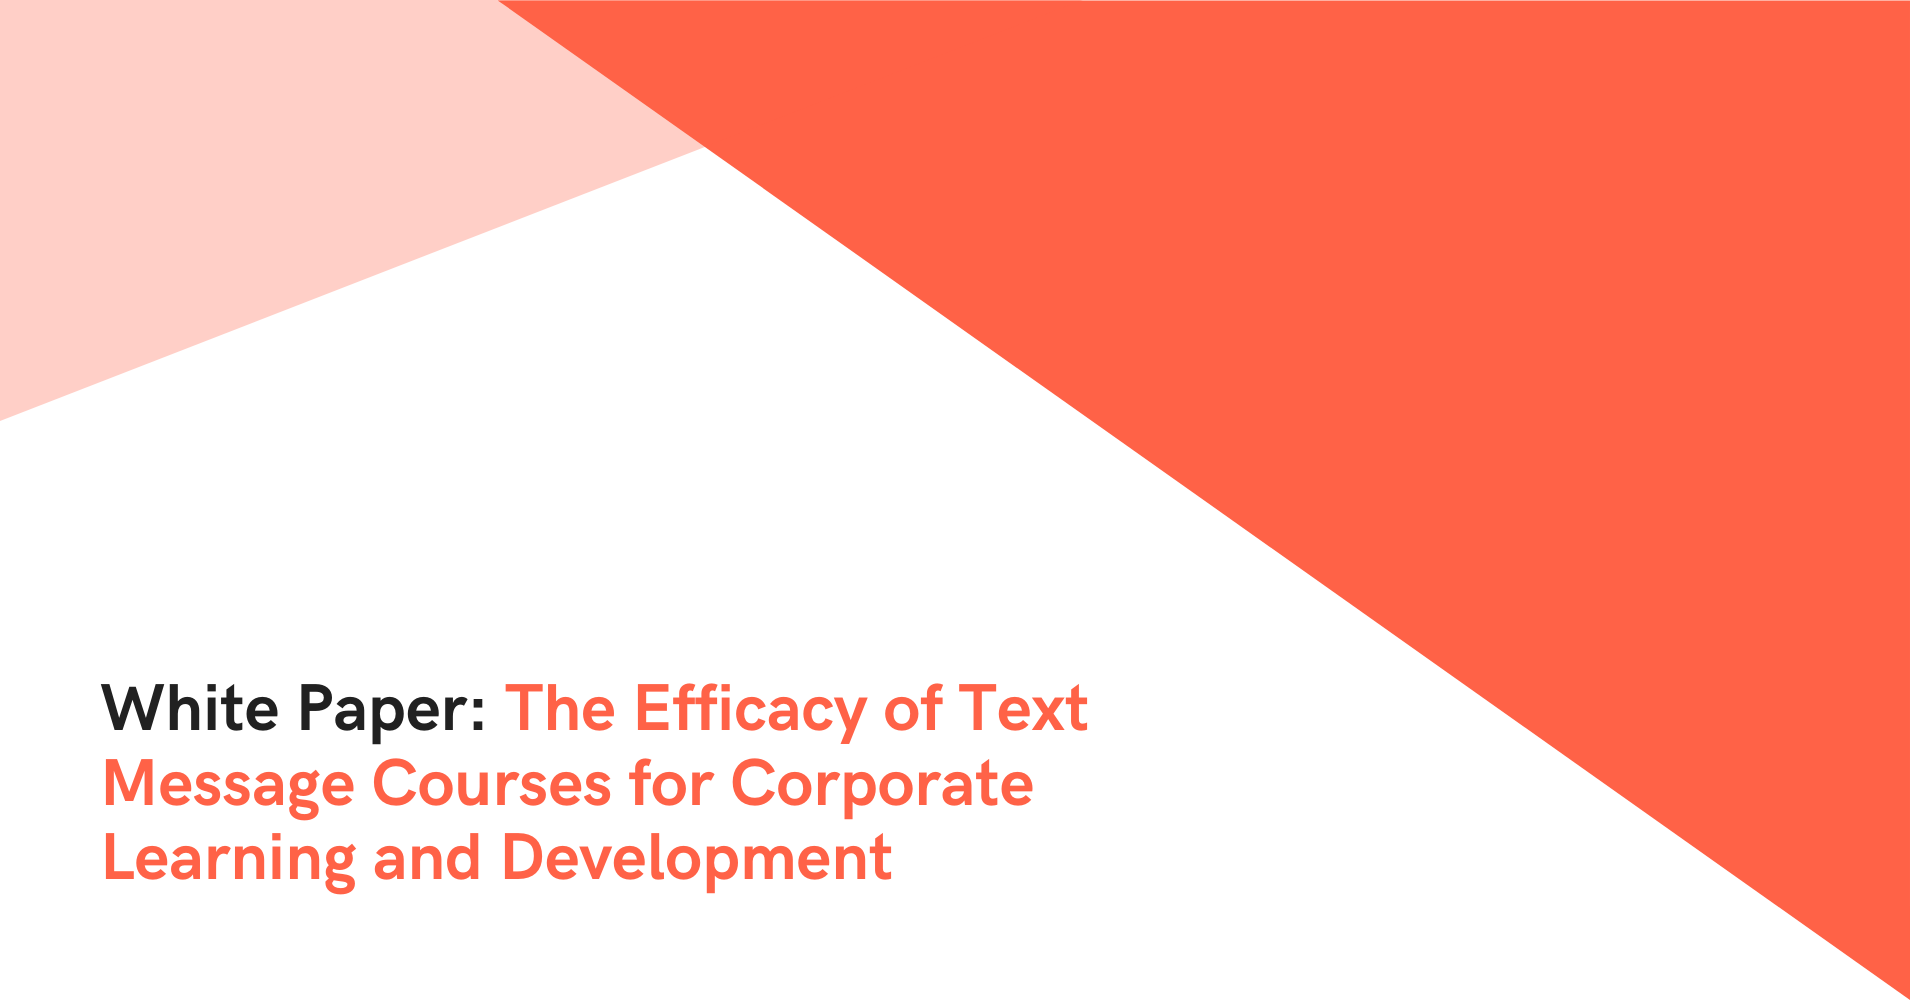 White paper: the efficacy of text message courses for corporate learning and development